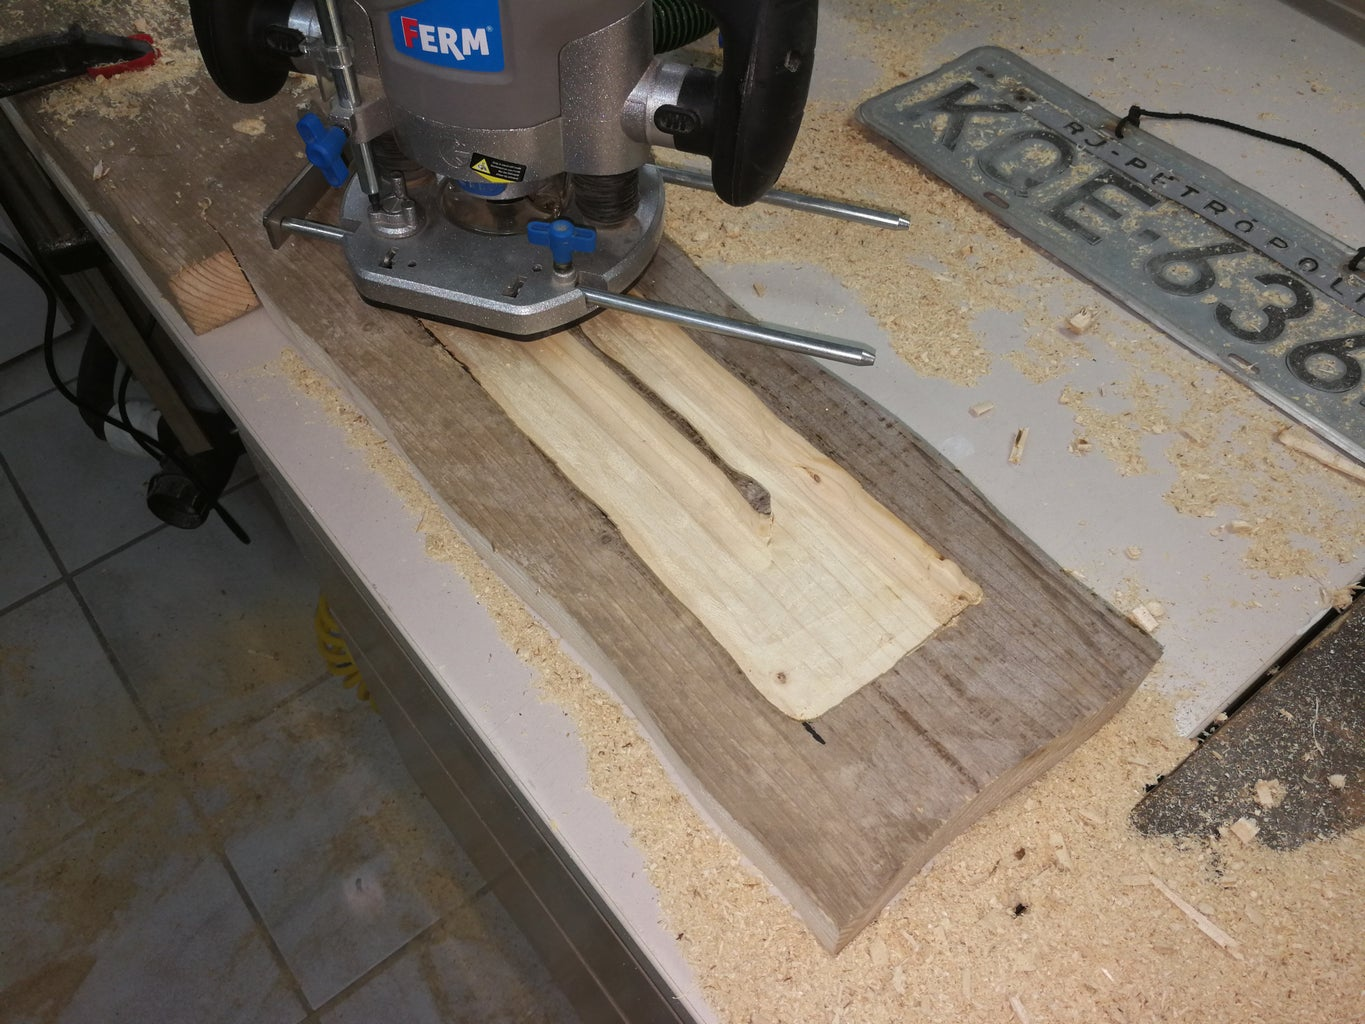 Routing the Hidden Cabinet